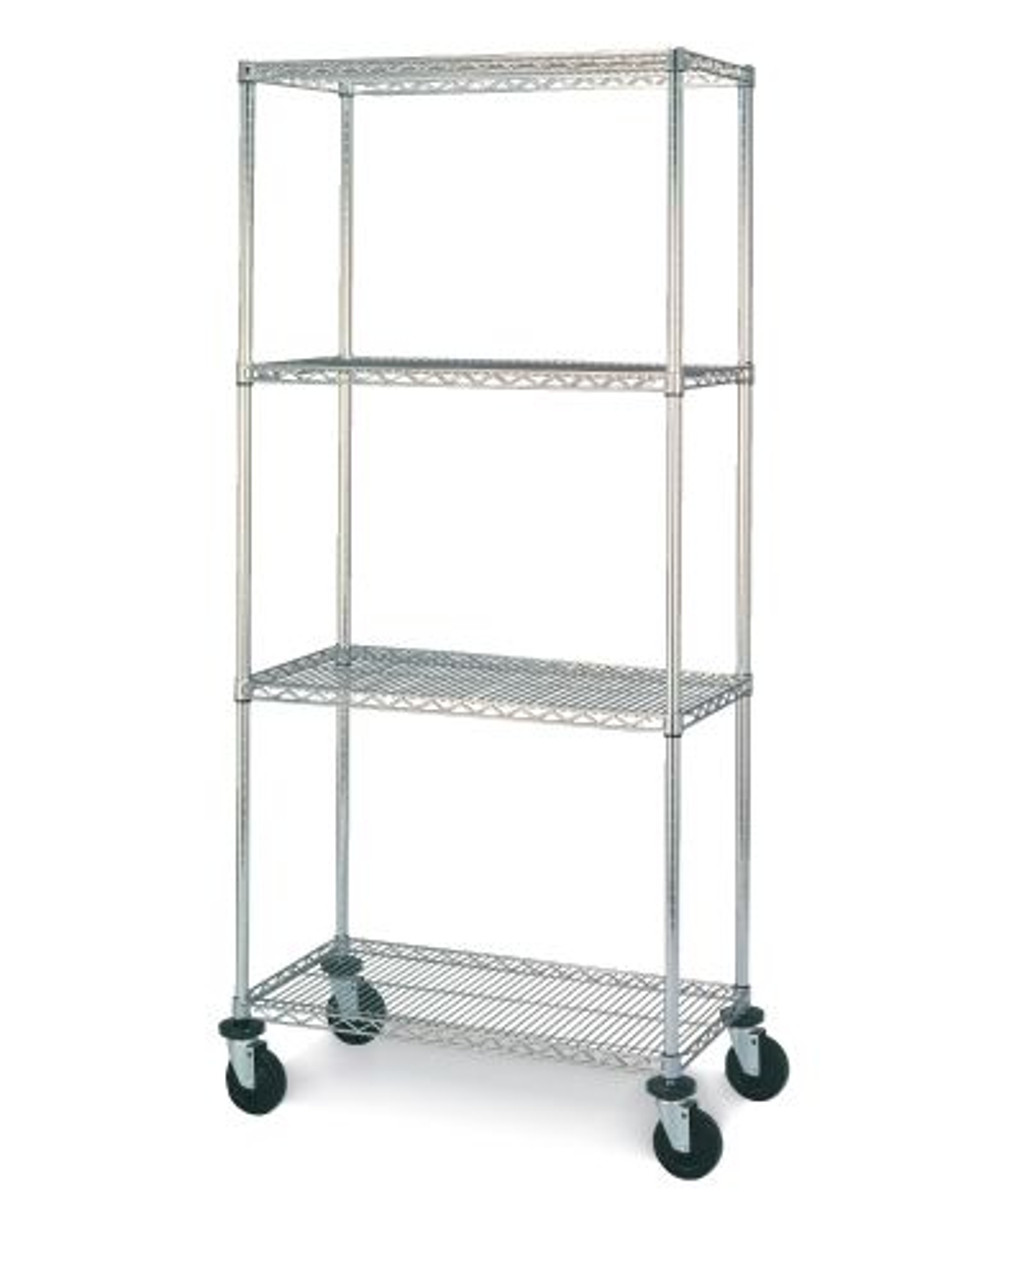 "Olympic 24"" Deep 4 Shelf Mobile Carts - Chrome - 24"" x 60"" x 68"" MJ2460-63UC"